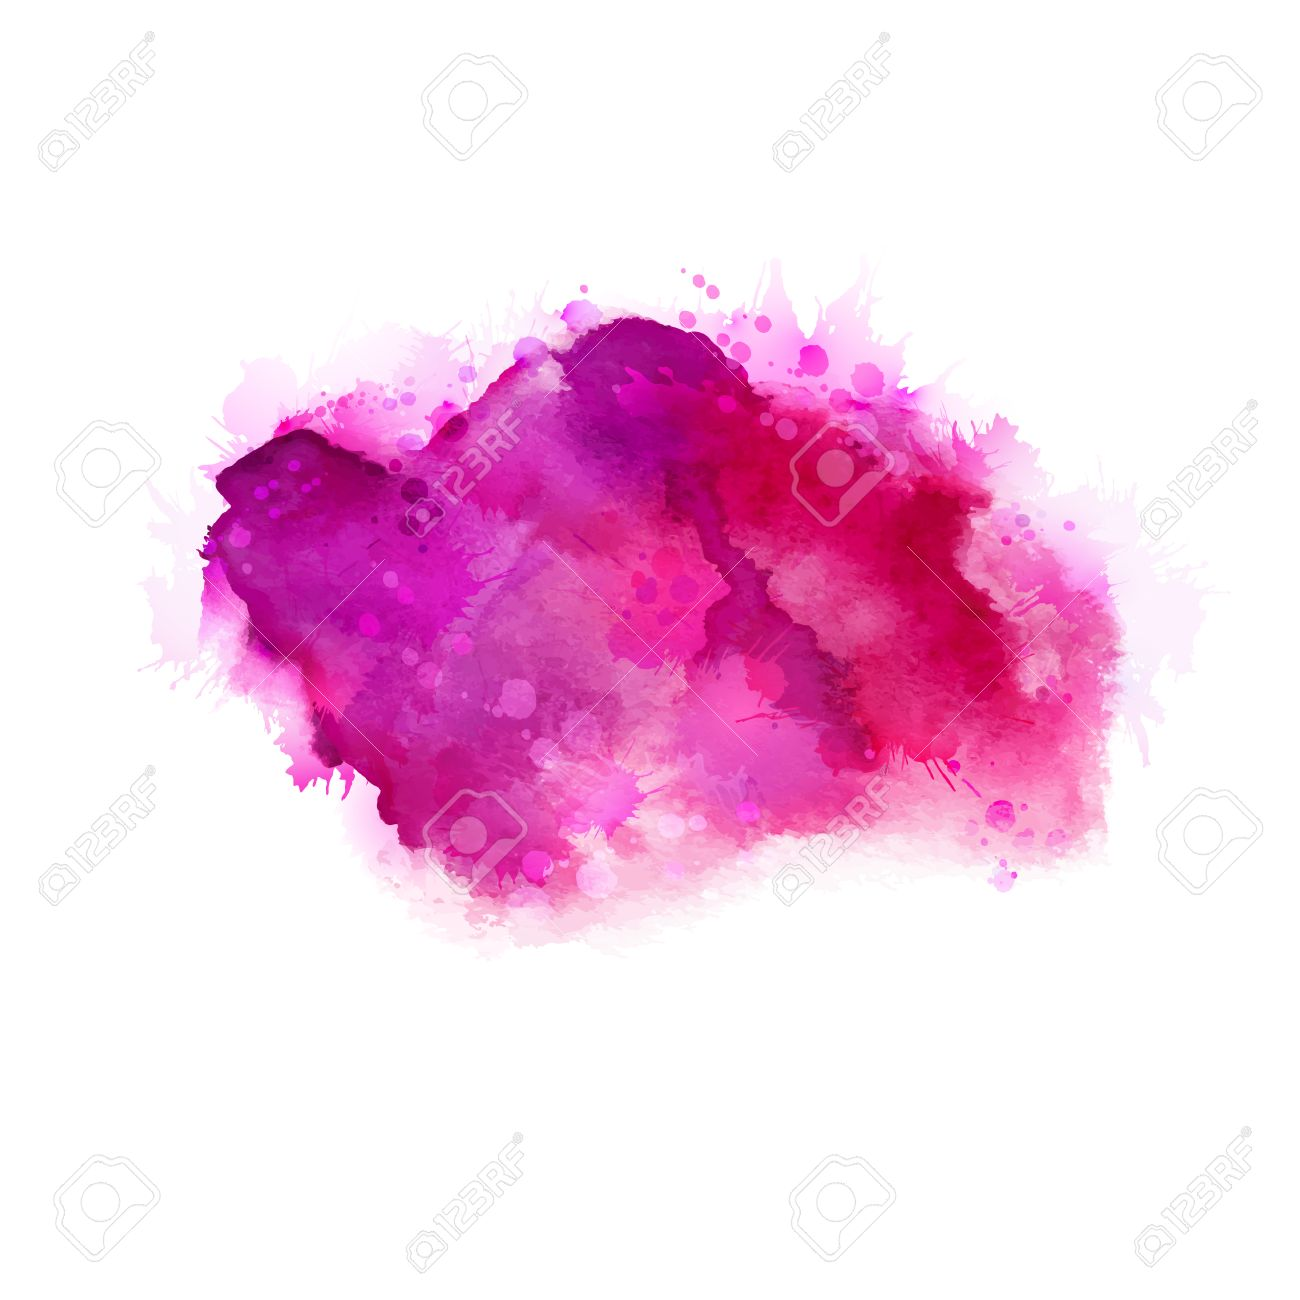 Bright Pink Paint Geranium Hot Pink And Magenta Watercolor Stains Bright Color